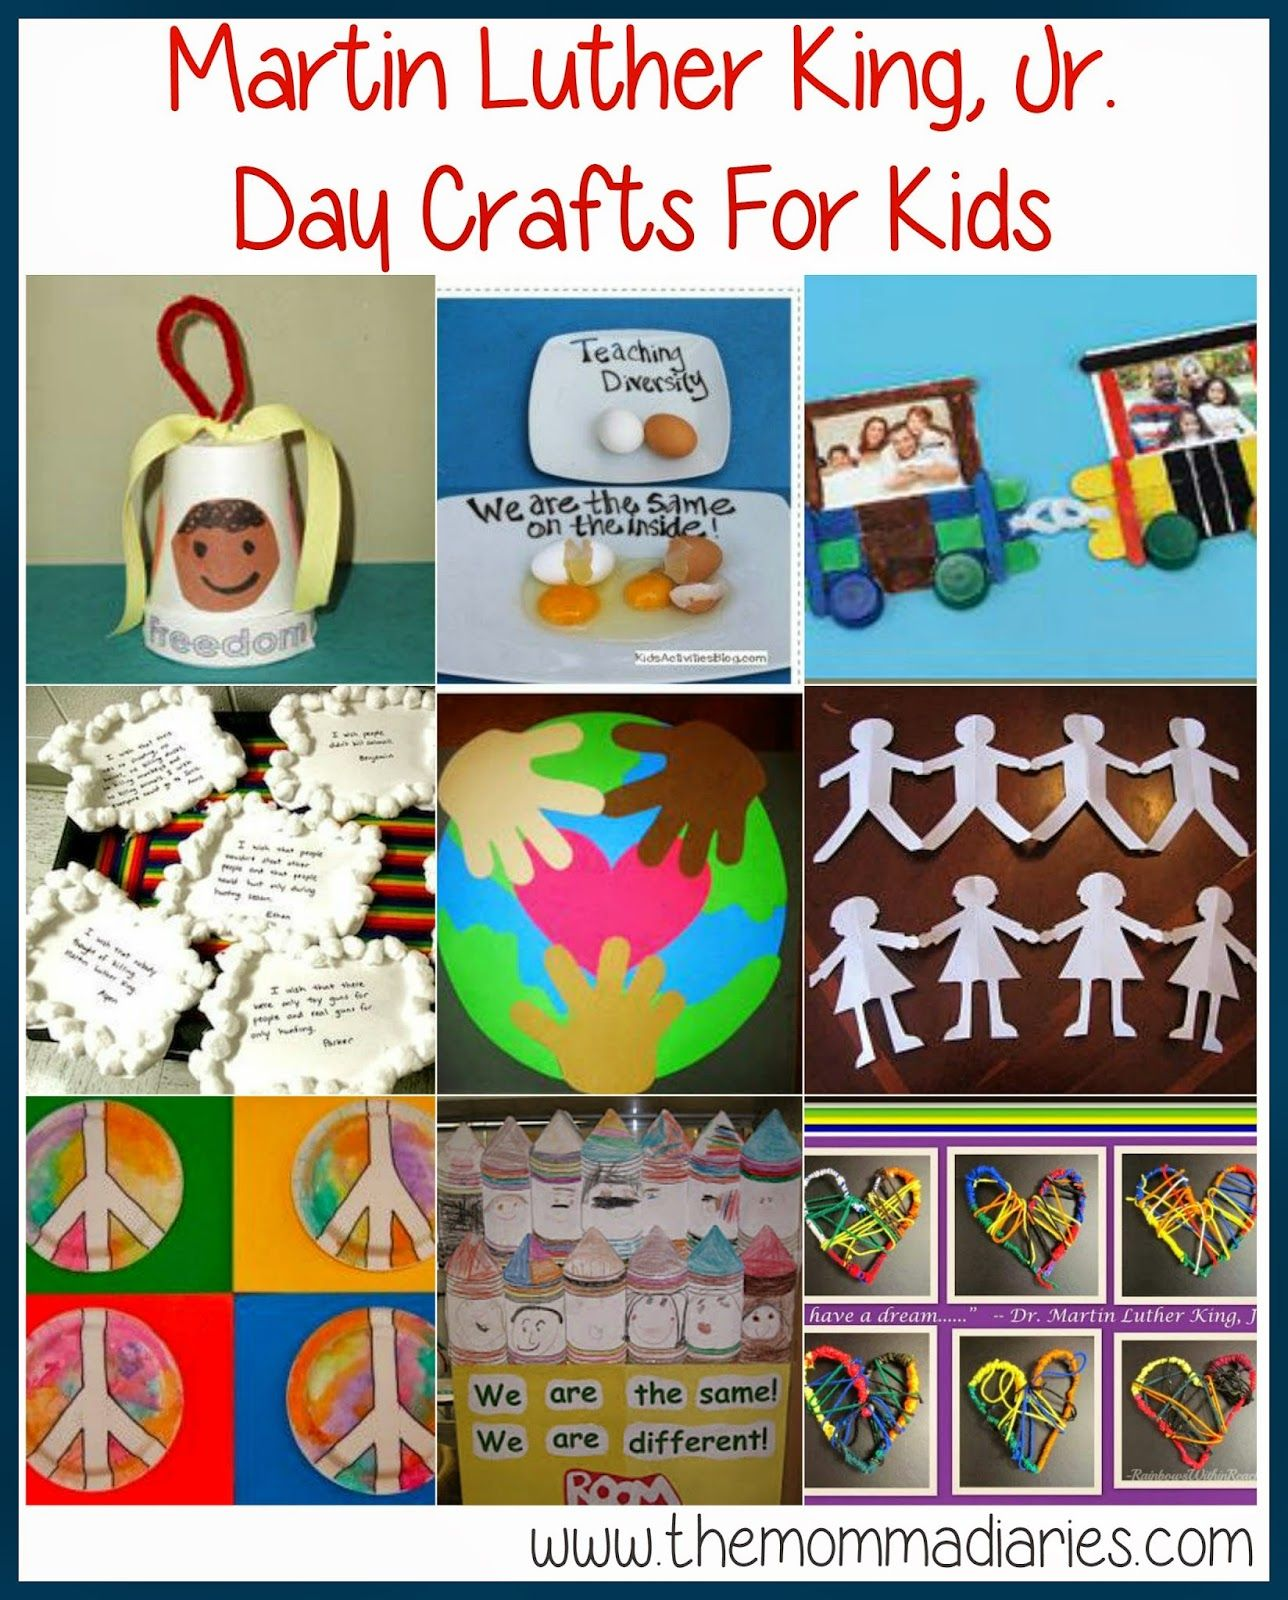 Martin Luther King Jr Day Crafts For Kids